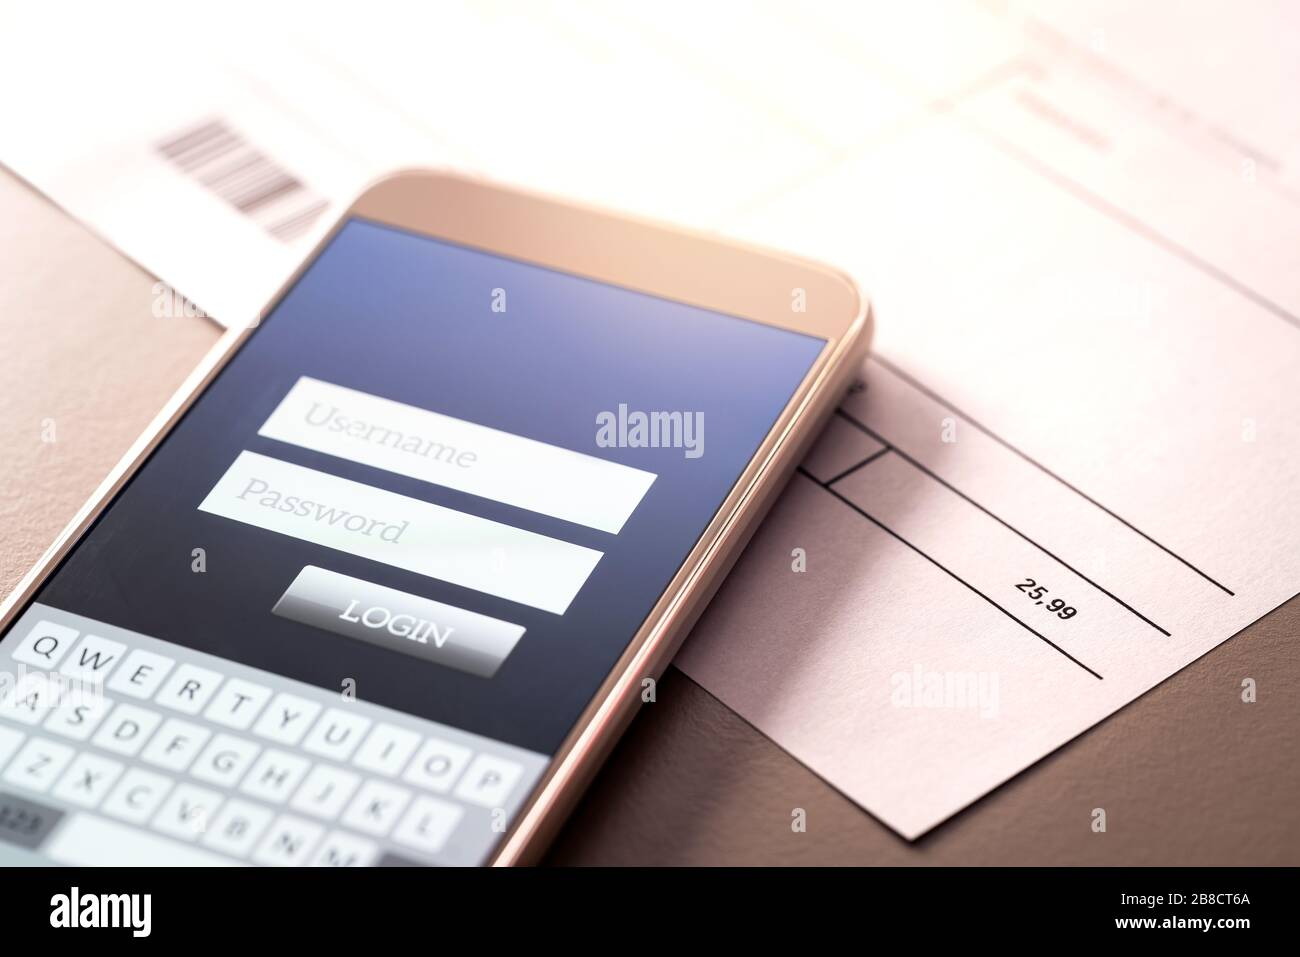 Phone bill and smartphone with online bank app. Electricity, energy, utilities or gas invoice on table with mobile smart device for internet payment. Stock Photo